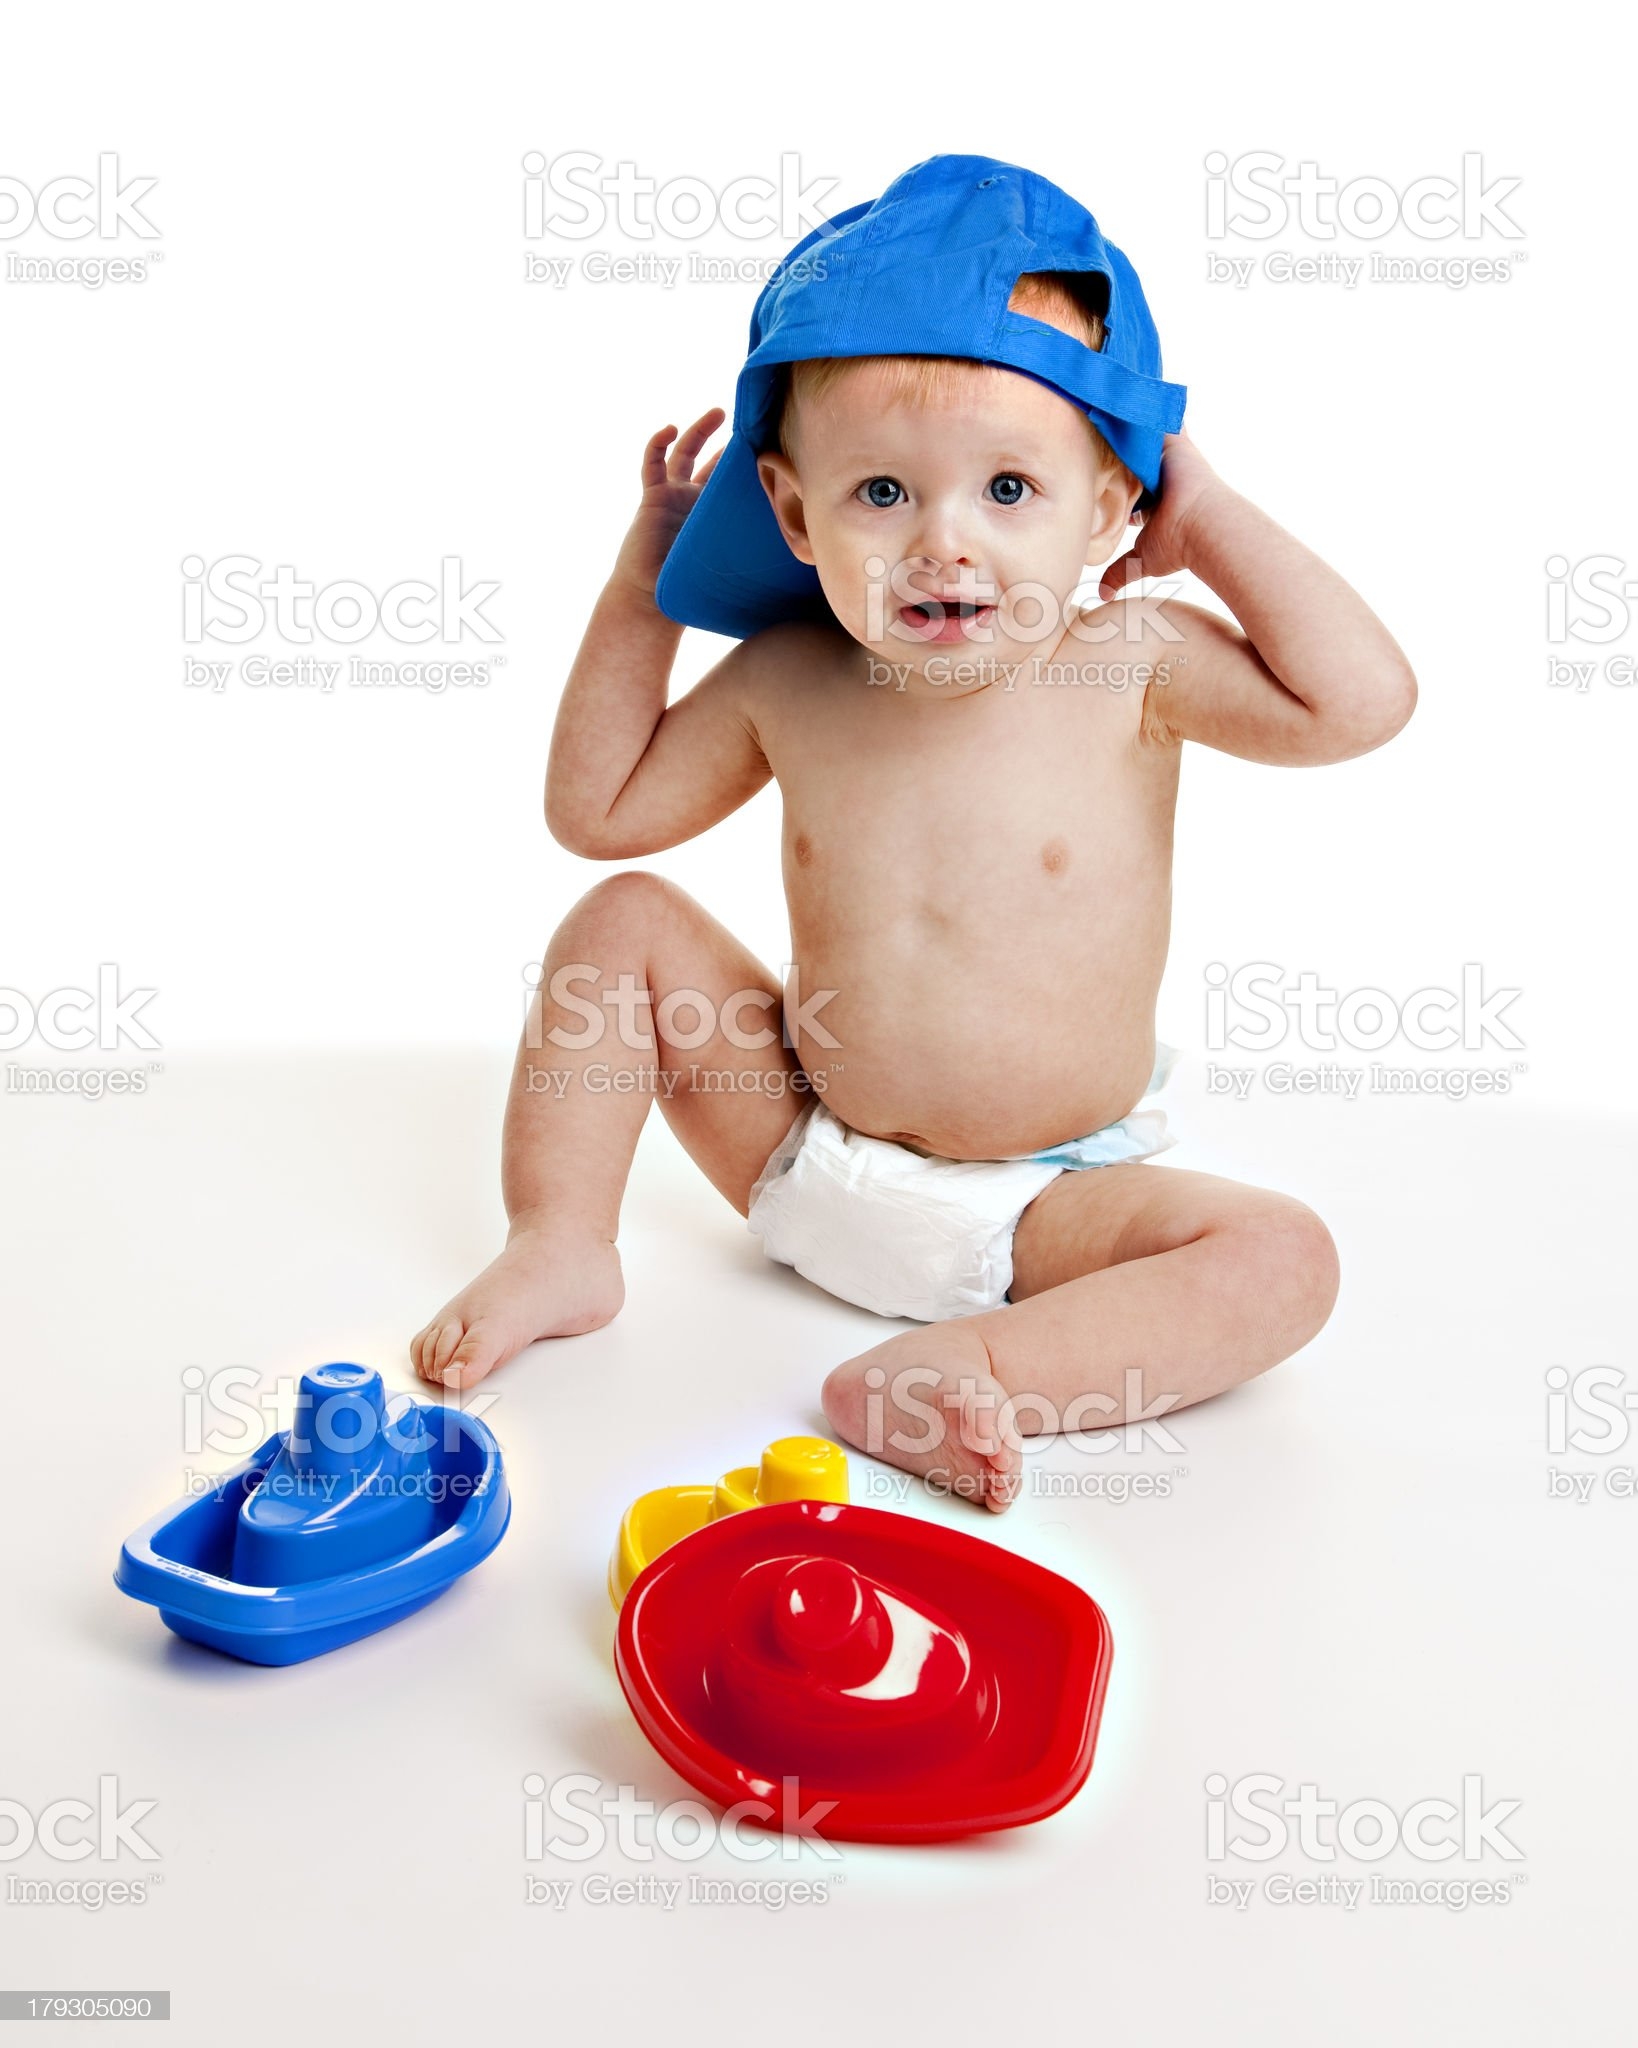 Happy Baby Boy Playing with Toy Boats royalty-free stock photo